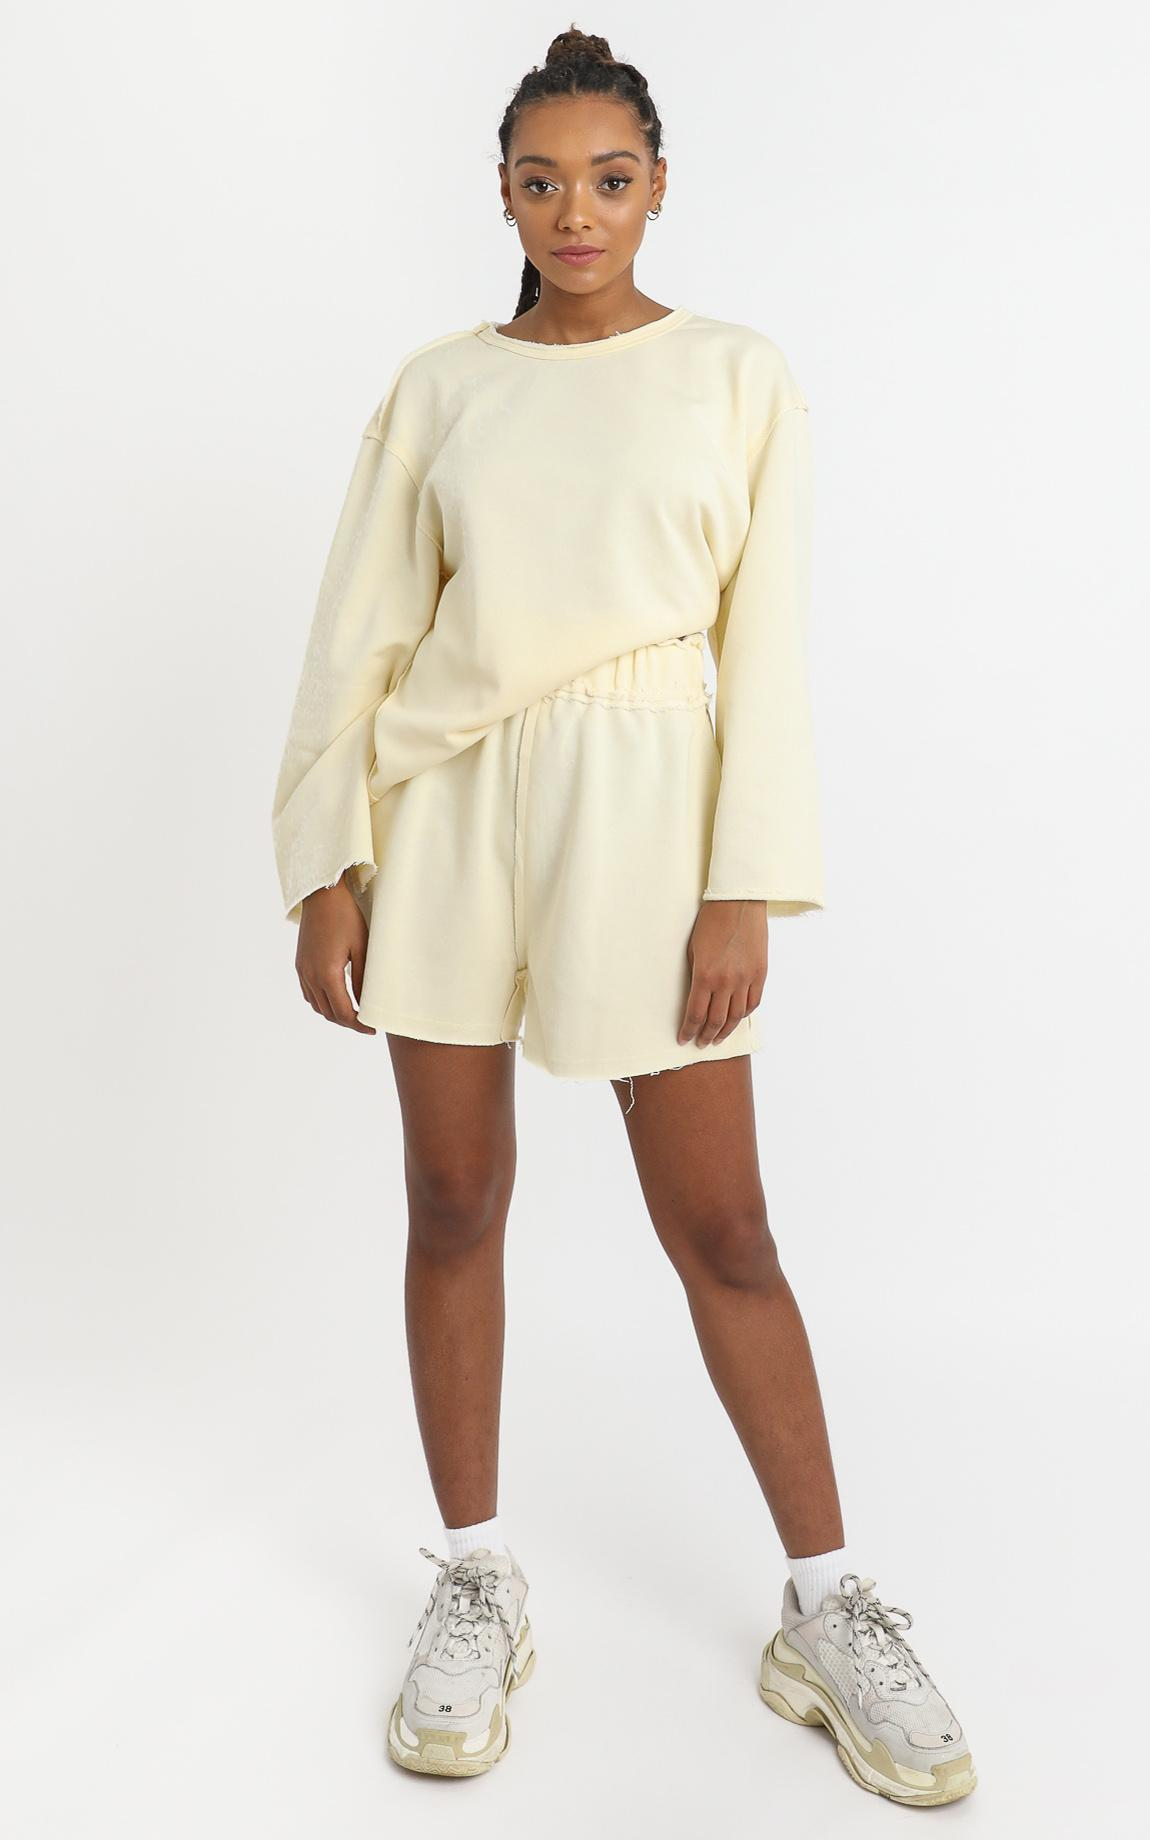 Fable Shorts in Pastel Yellow - 6 (XS), Yellow, hi-res image number null